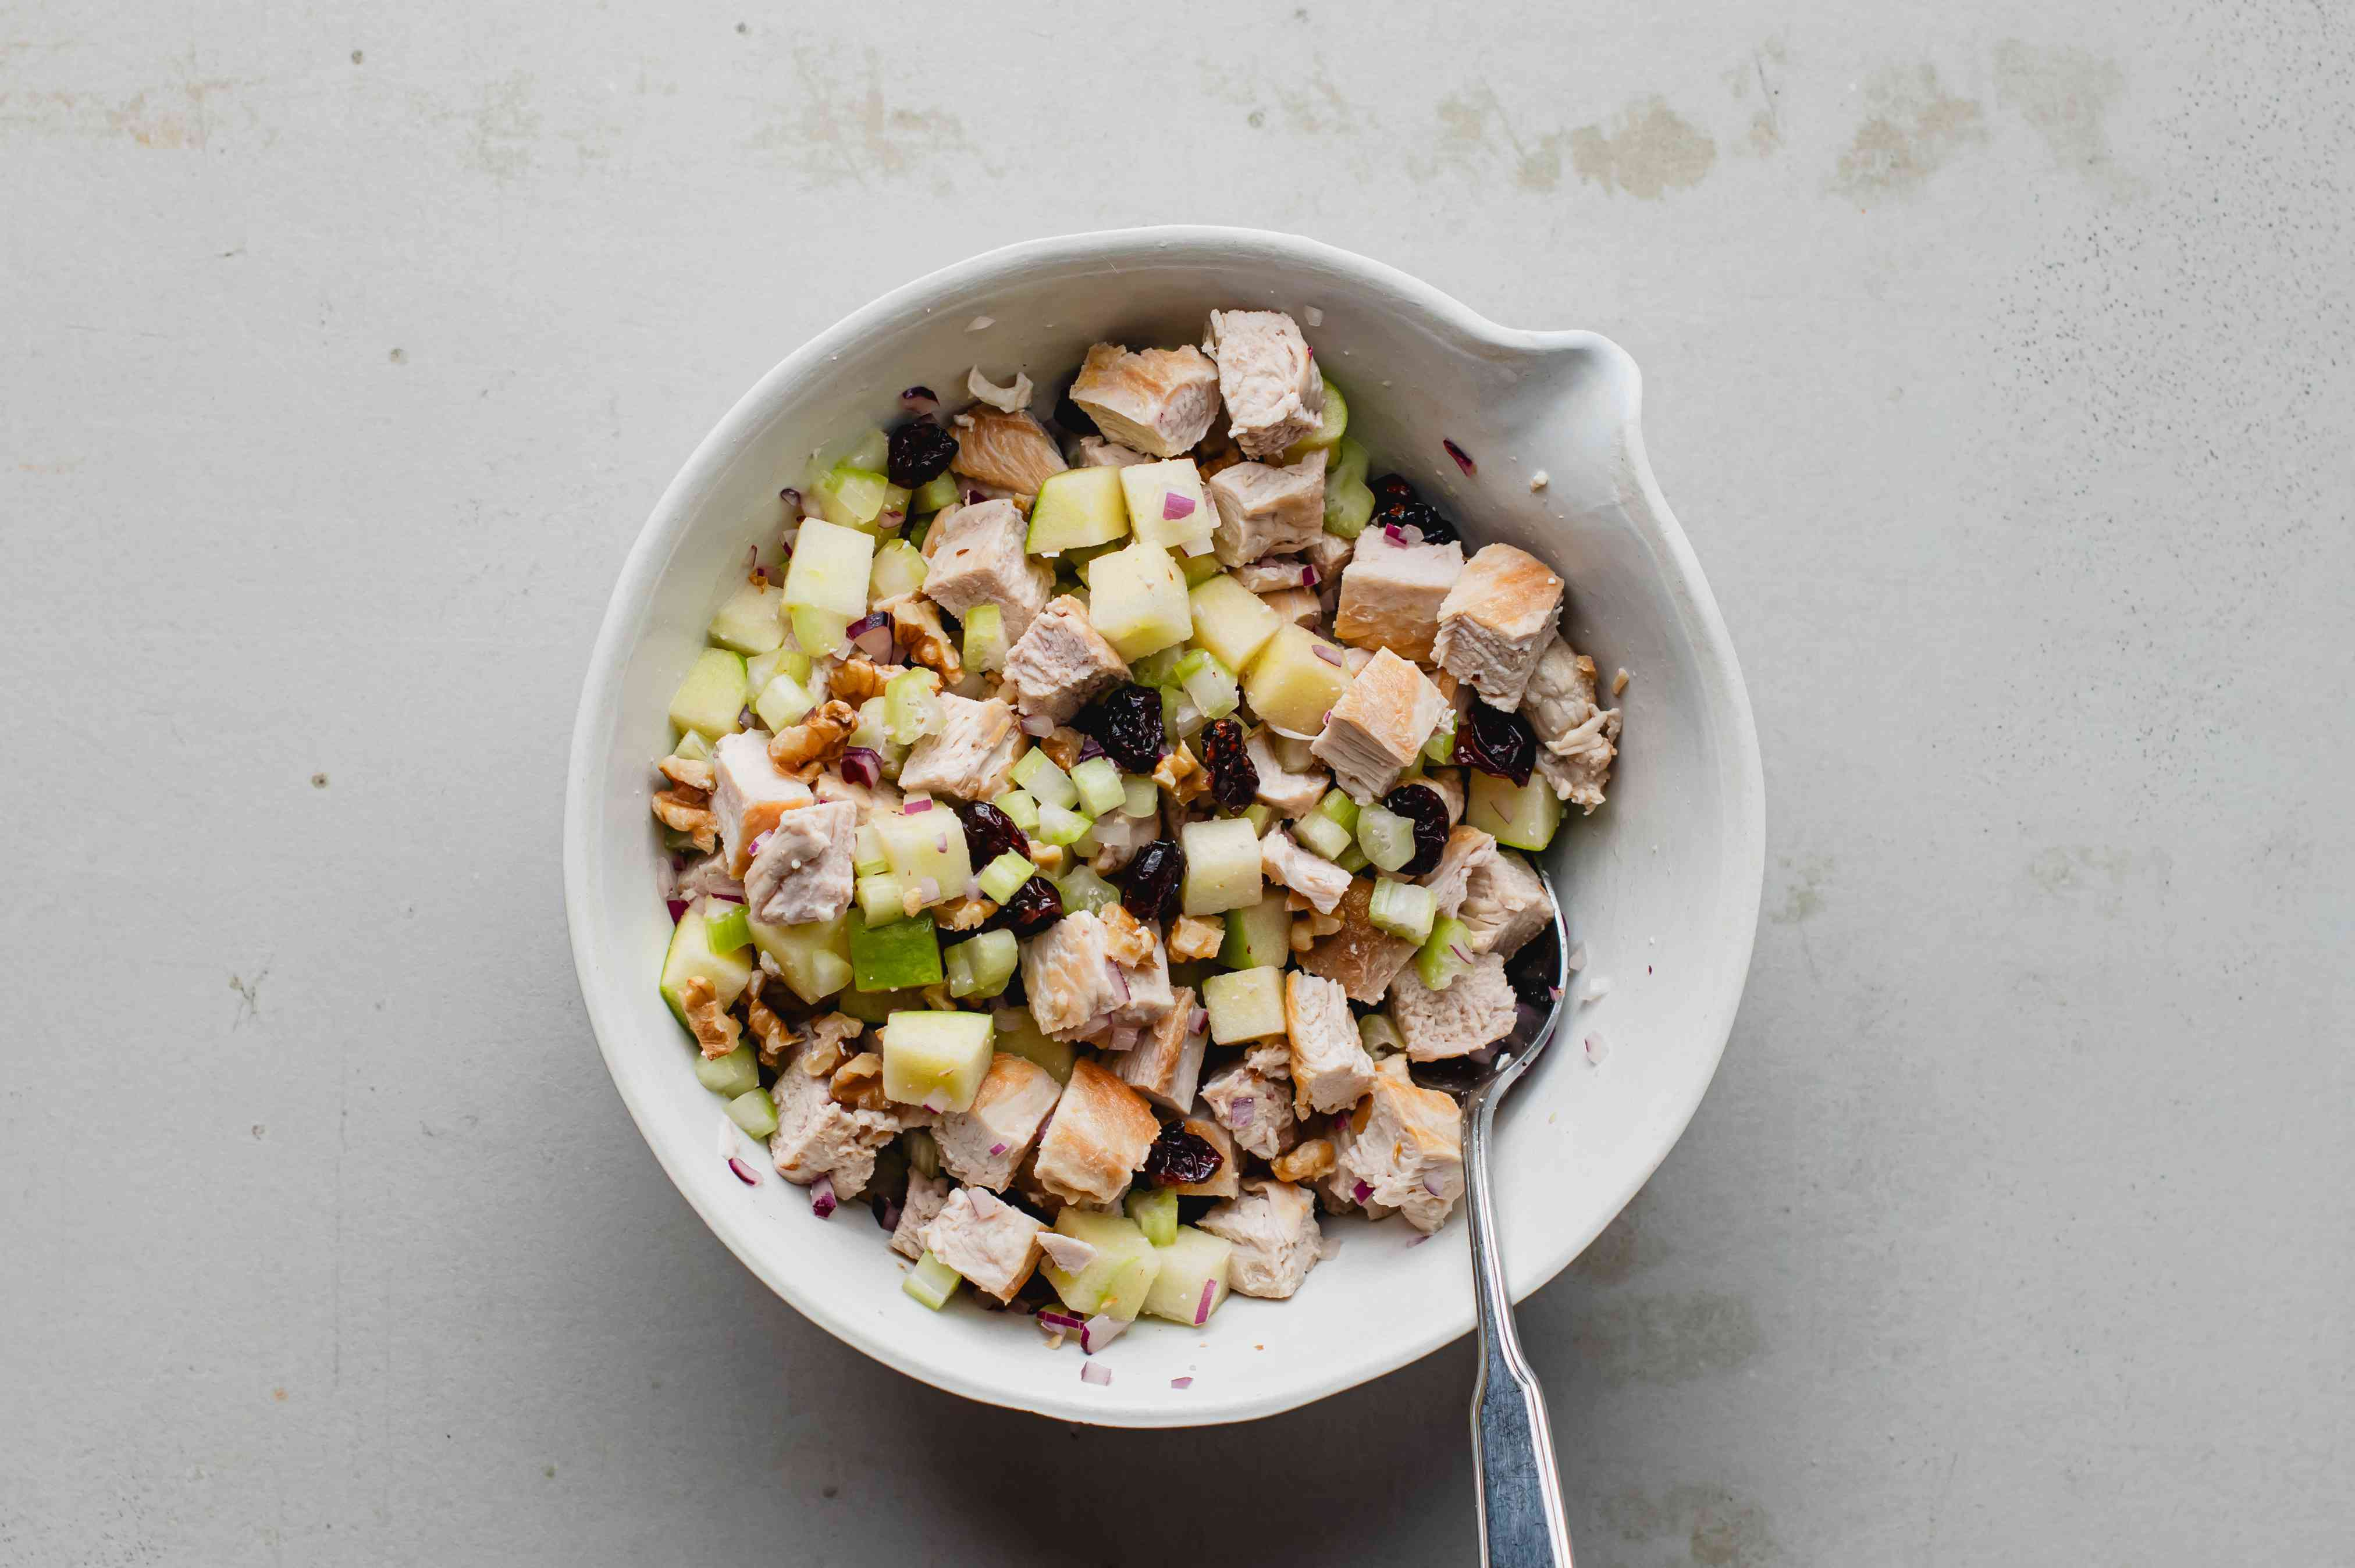 Diced chicken, apples, cranberries, walnuts, and celery in a bowl